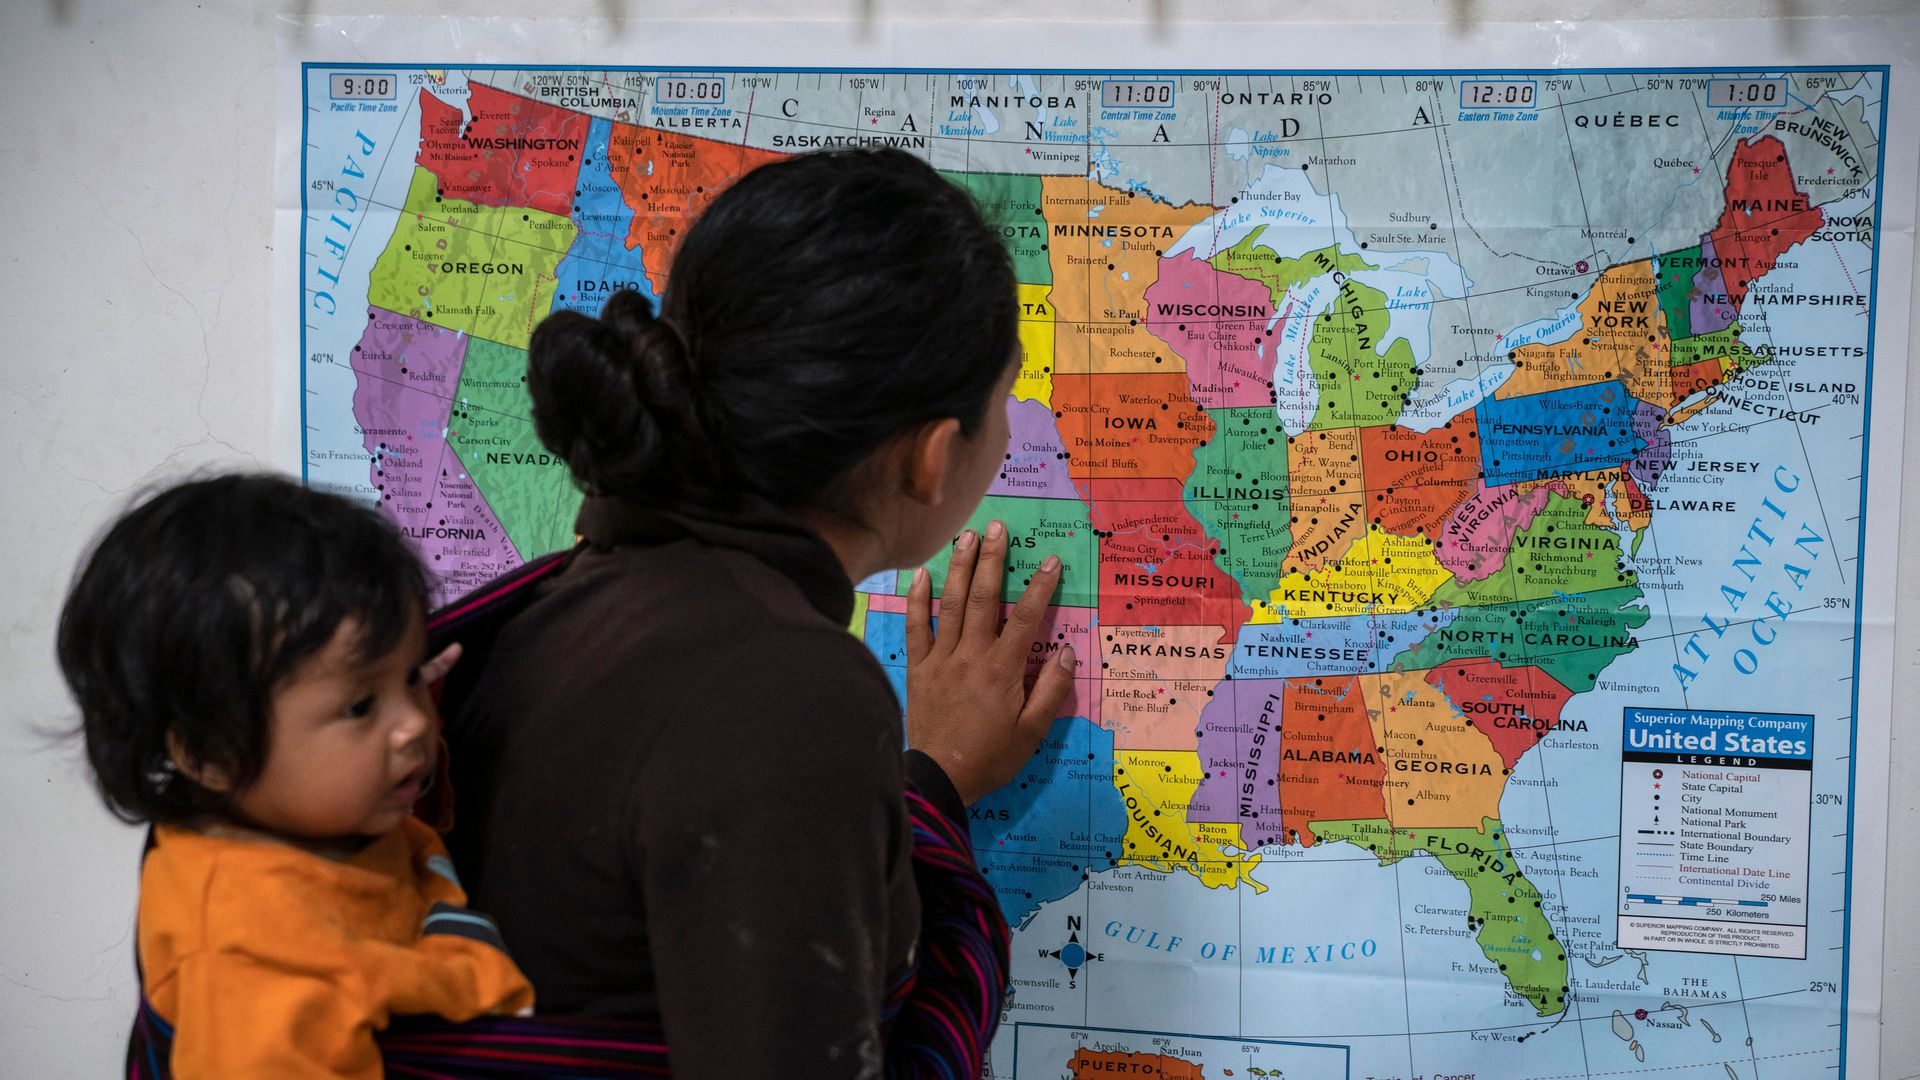 Guatemalan woman looking at a map of the U.S. with her baby